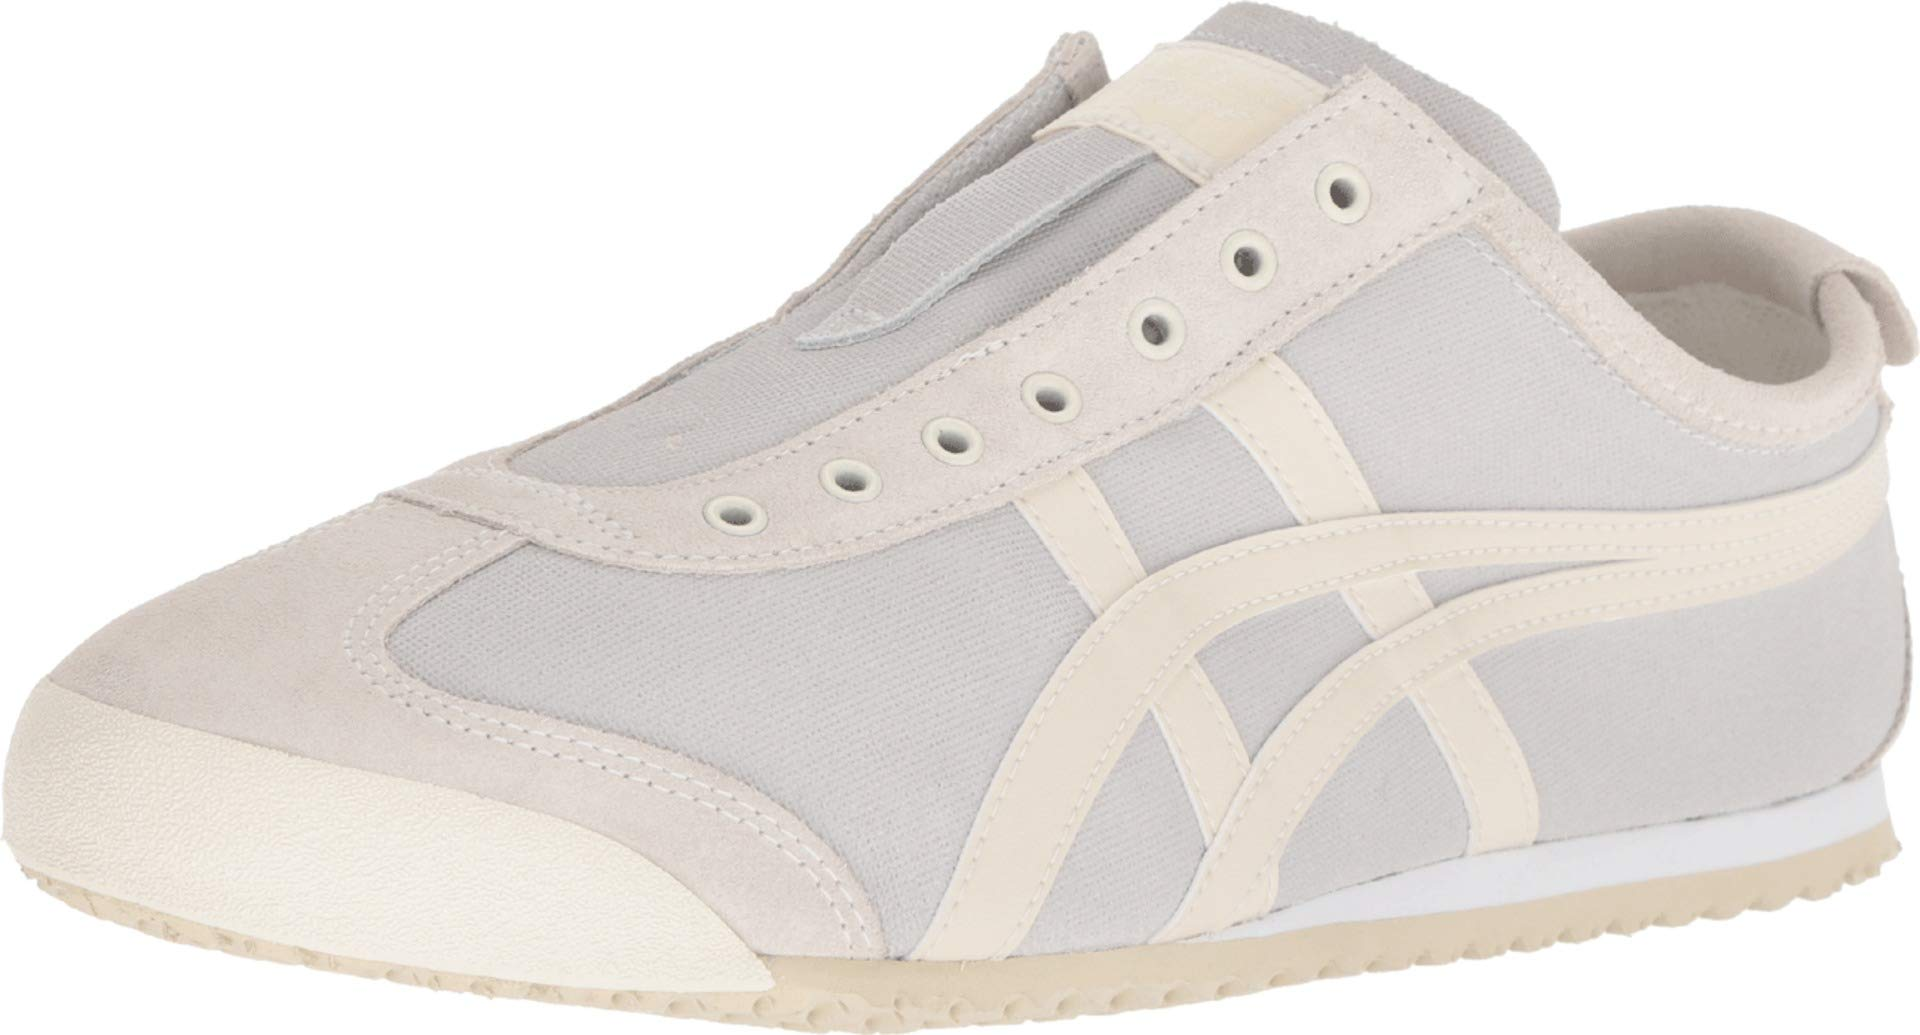 new products 7256b c4771 Onitsuka Tiger Unisex Mexico 66 Slip-on Shoes 1183A042, Cream/Oatmeal, 9 M  US